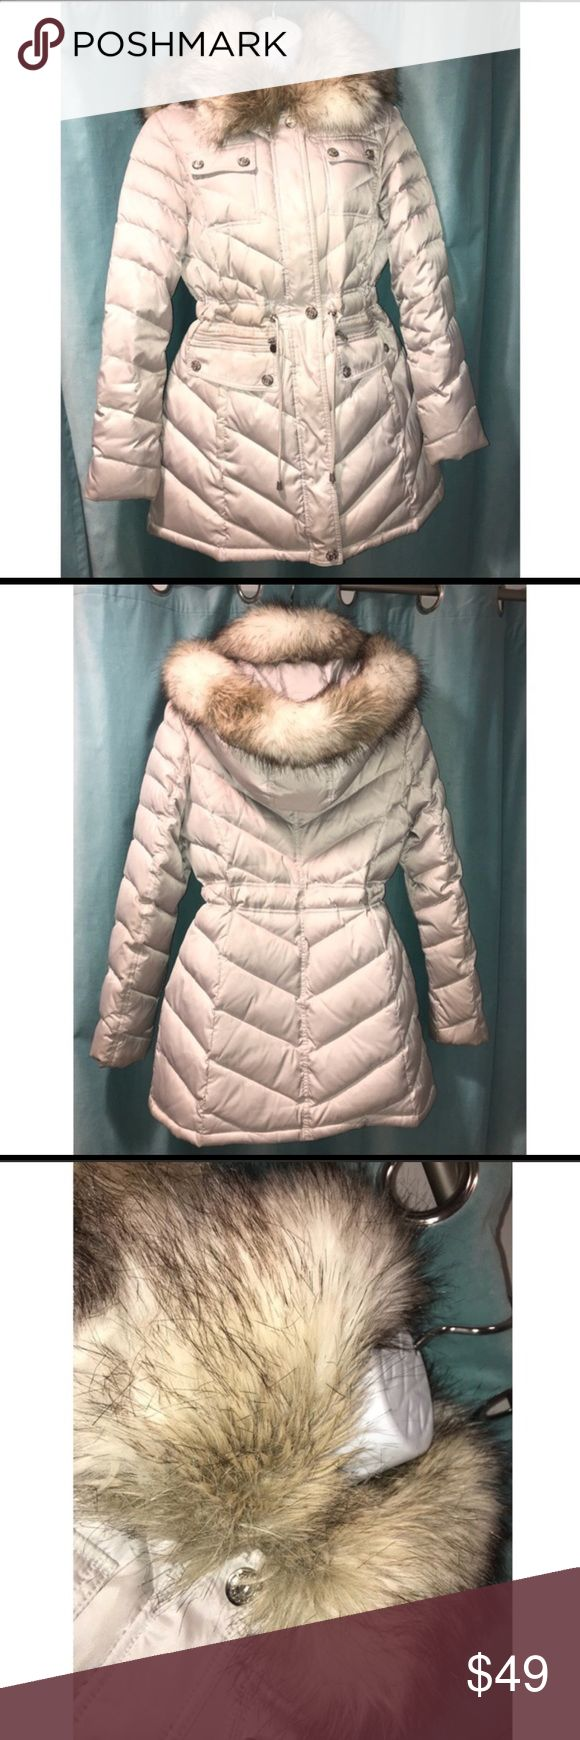 SILVER GREY MID- LENGTH PUFFER COAT FUR COLLAR. BEAUTIFUL MID LENGTH SILVER GREY PUFFER COAT WITH REMOVABLE FAUX FUR HOOD. MADE BY LAUNDRY by SHEILA SEGAL. VERY GENTLY WARN. Laundry By Shelli Segal Jackets & Coats Puffers